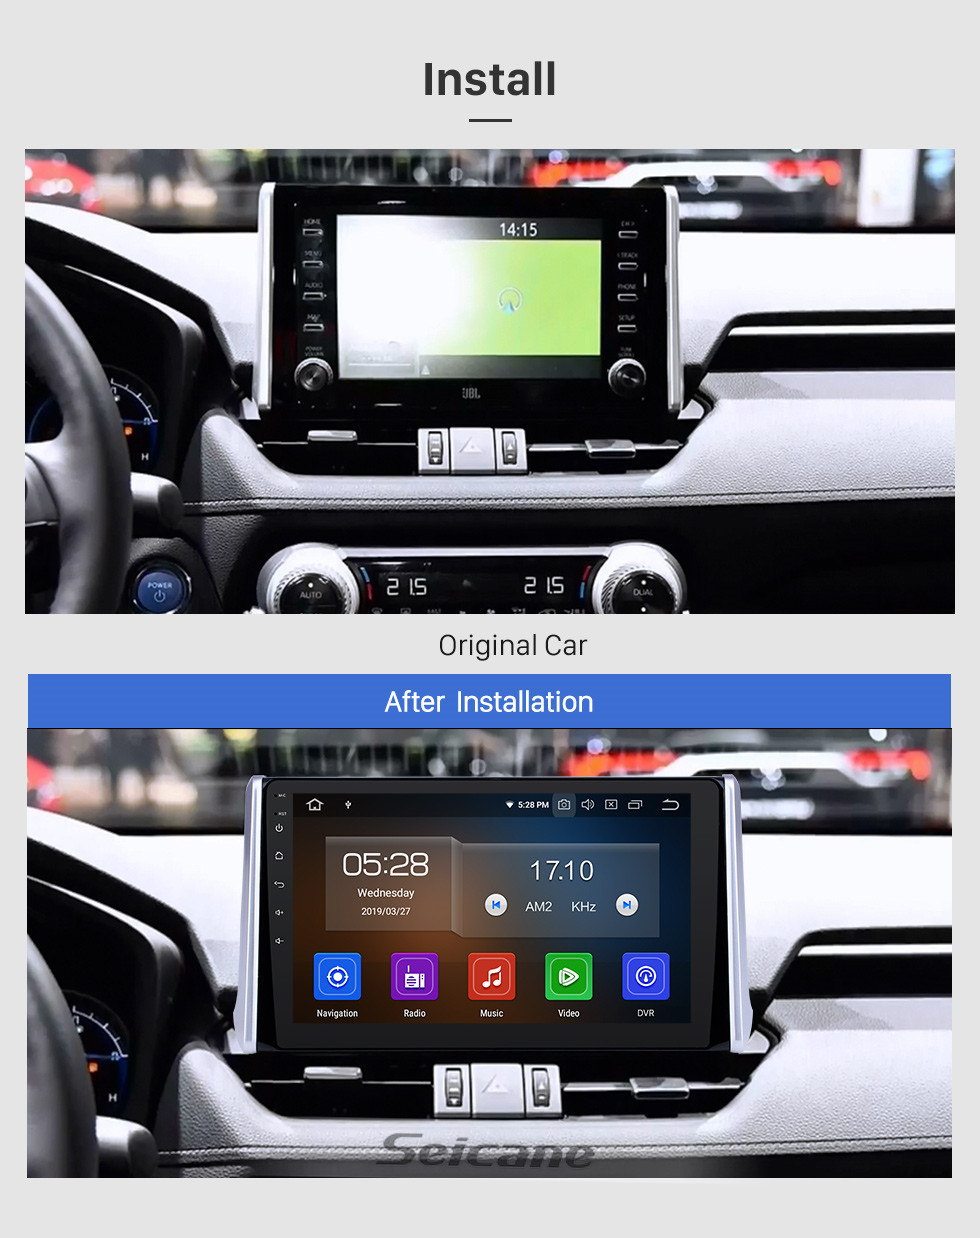 Seicane 10.1 inch 2019 Toyota RAV4 Touchscreen Android 10.0 GPS Navigation Radio Bluetooth Multimedia Player Carplay Music AUX support Backup camera 1080P